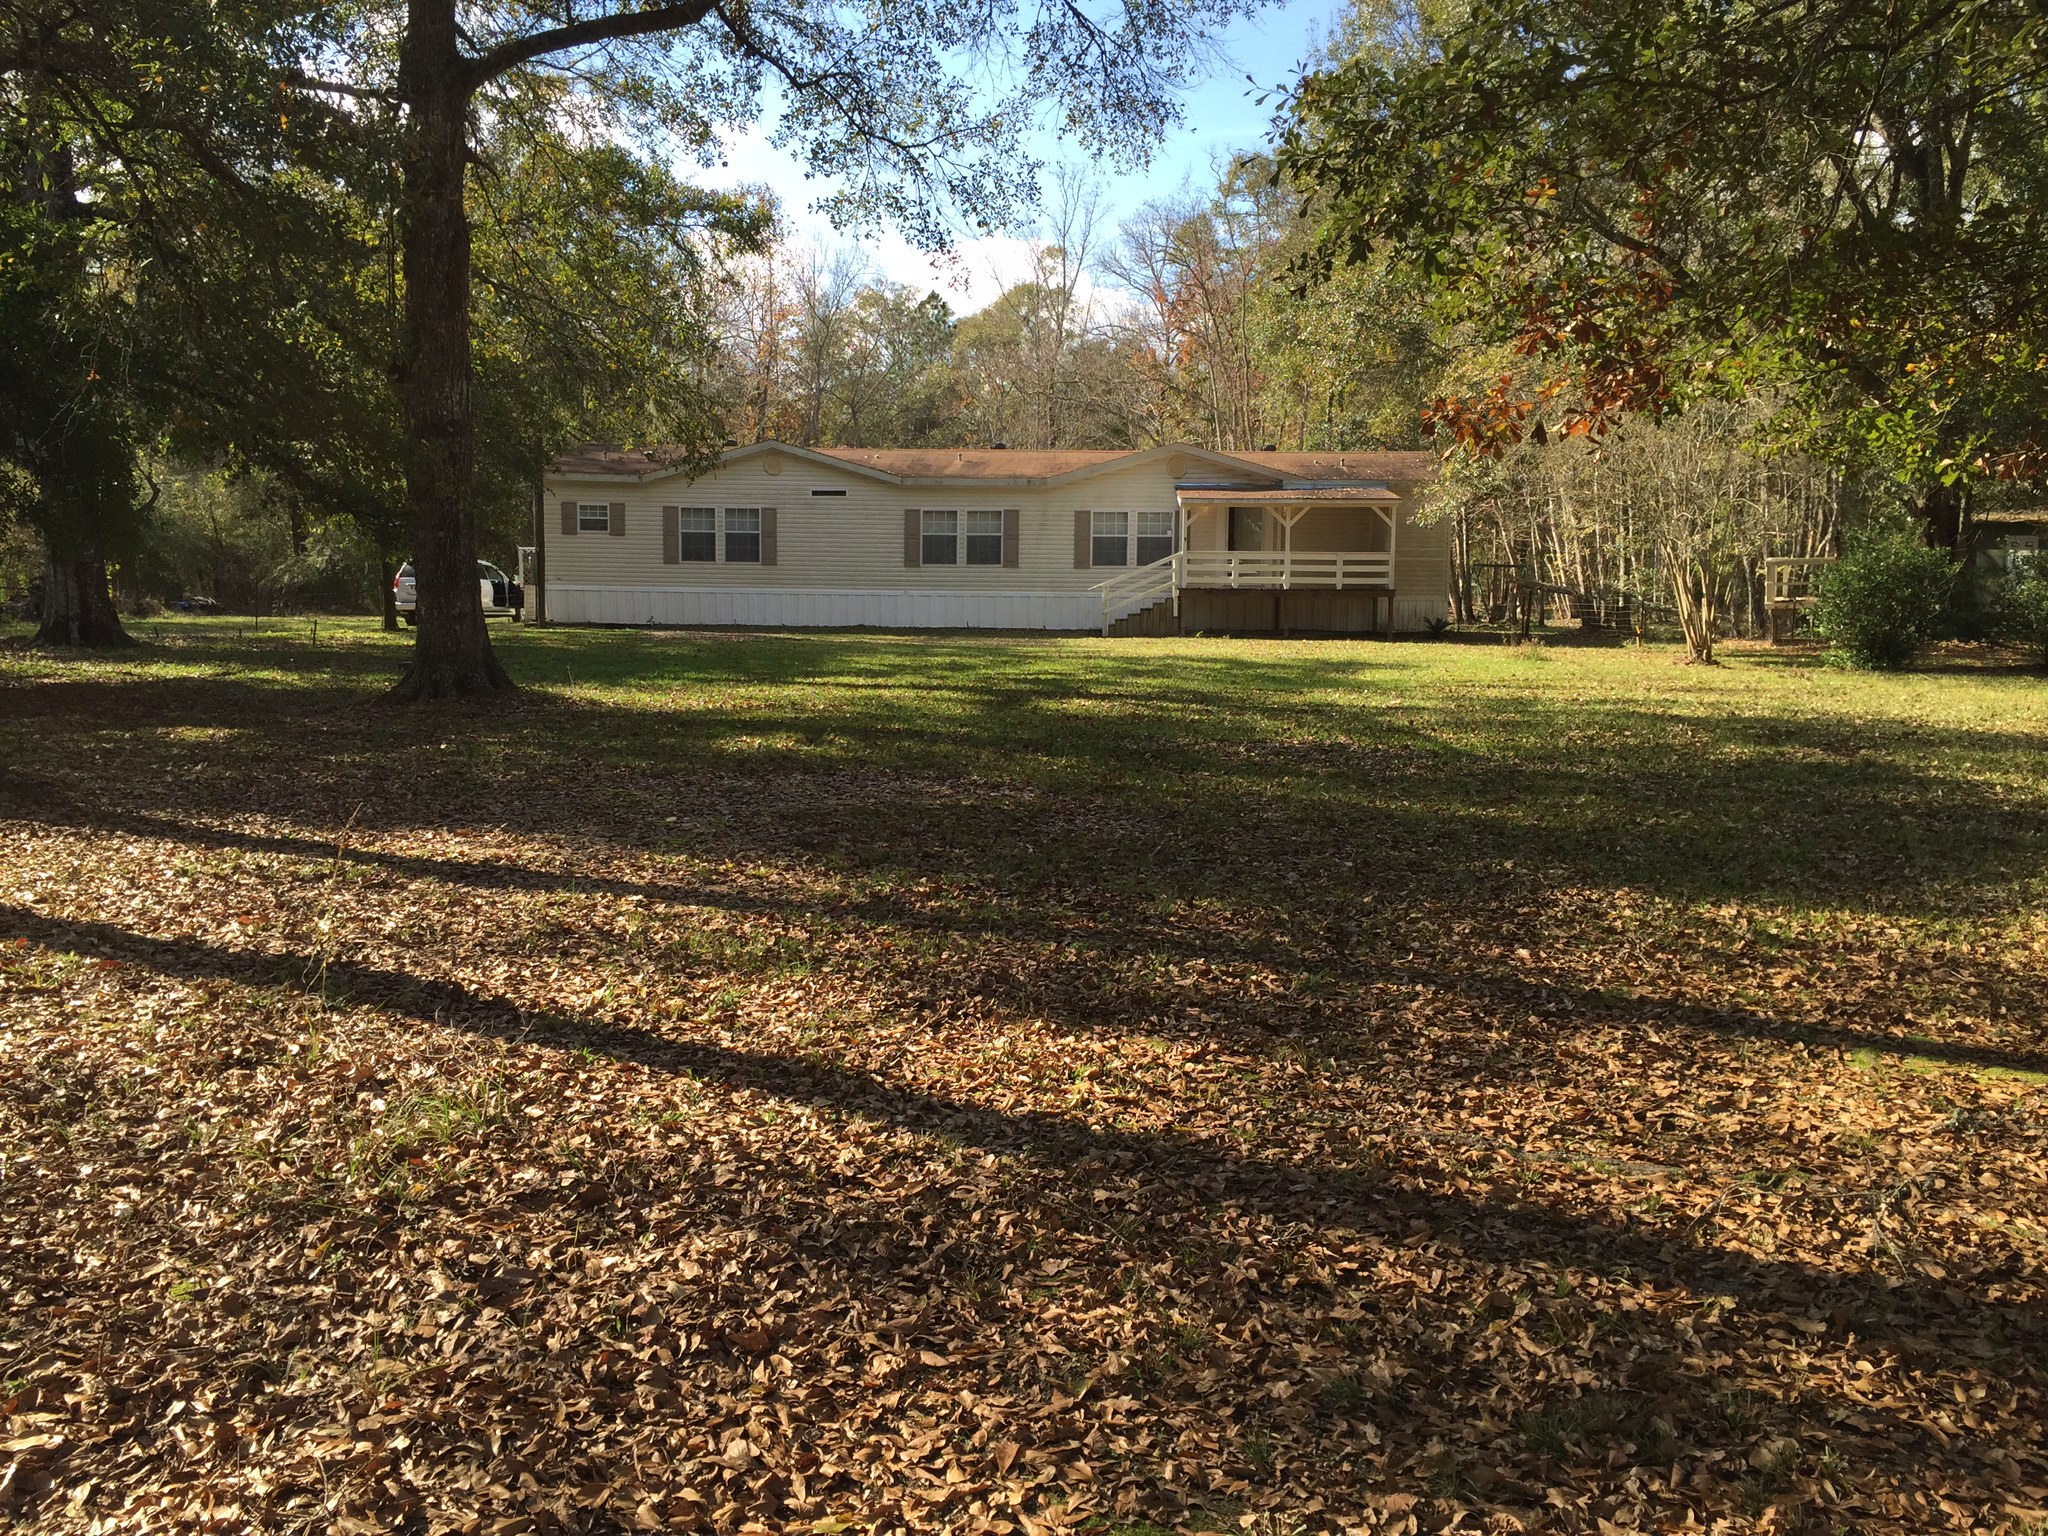 18847 N. Joor Rd, Zachary, Louisiana 70791